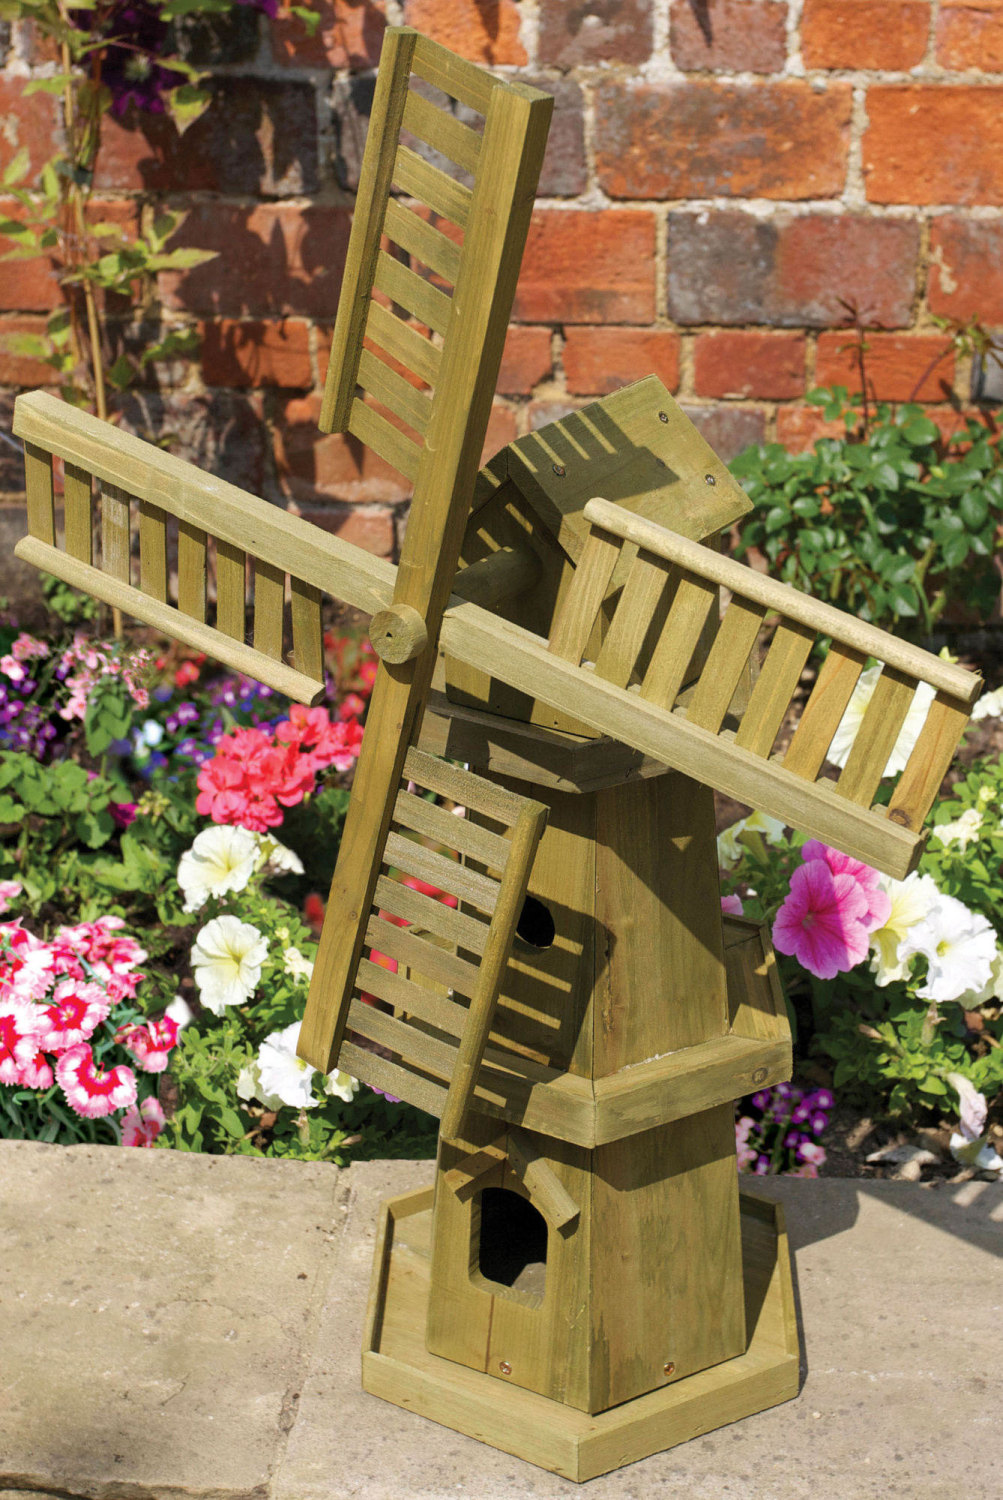 Smart Garden Giant Wooden Garden Windmill Ornament - 55cm H